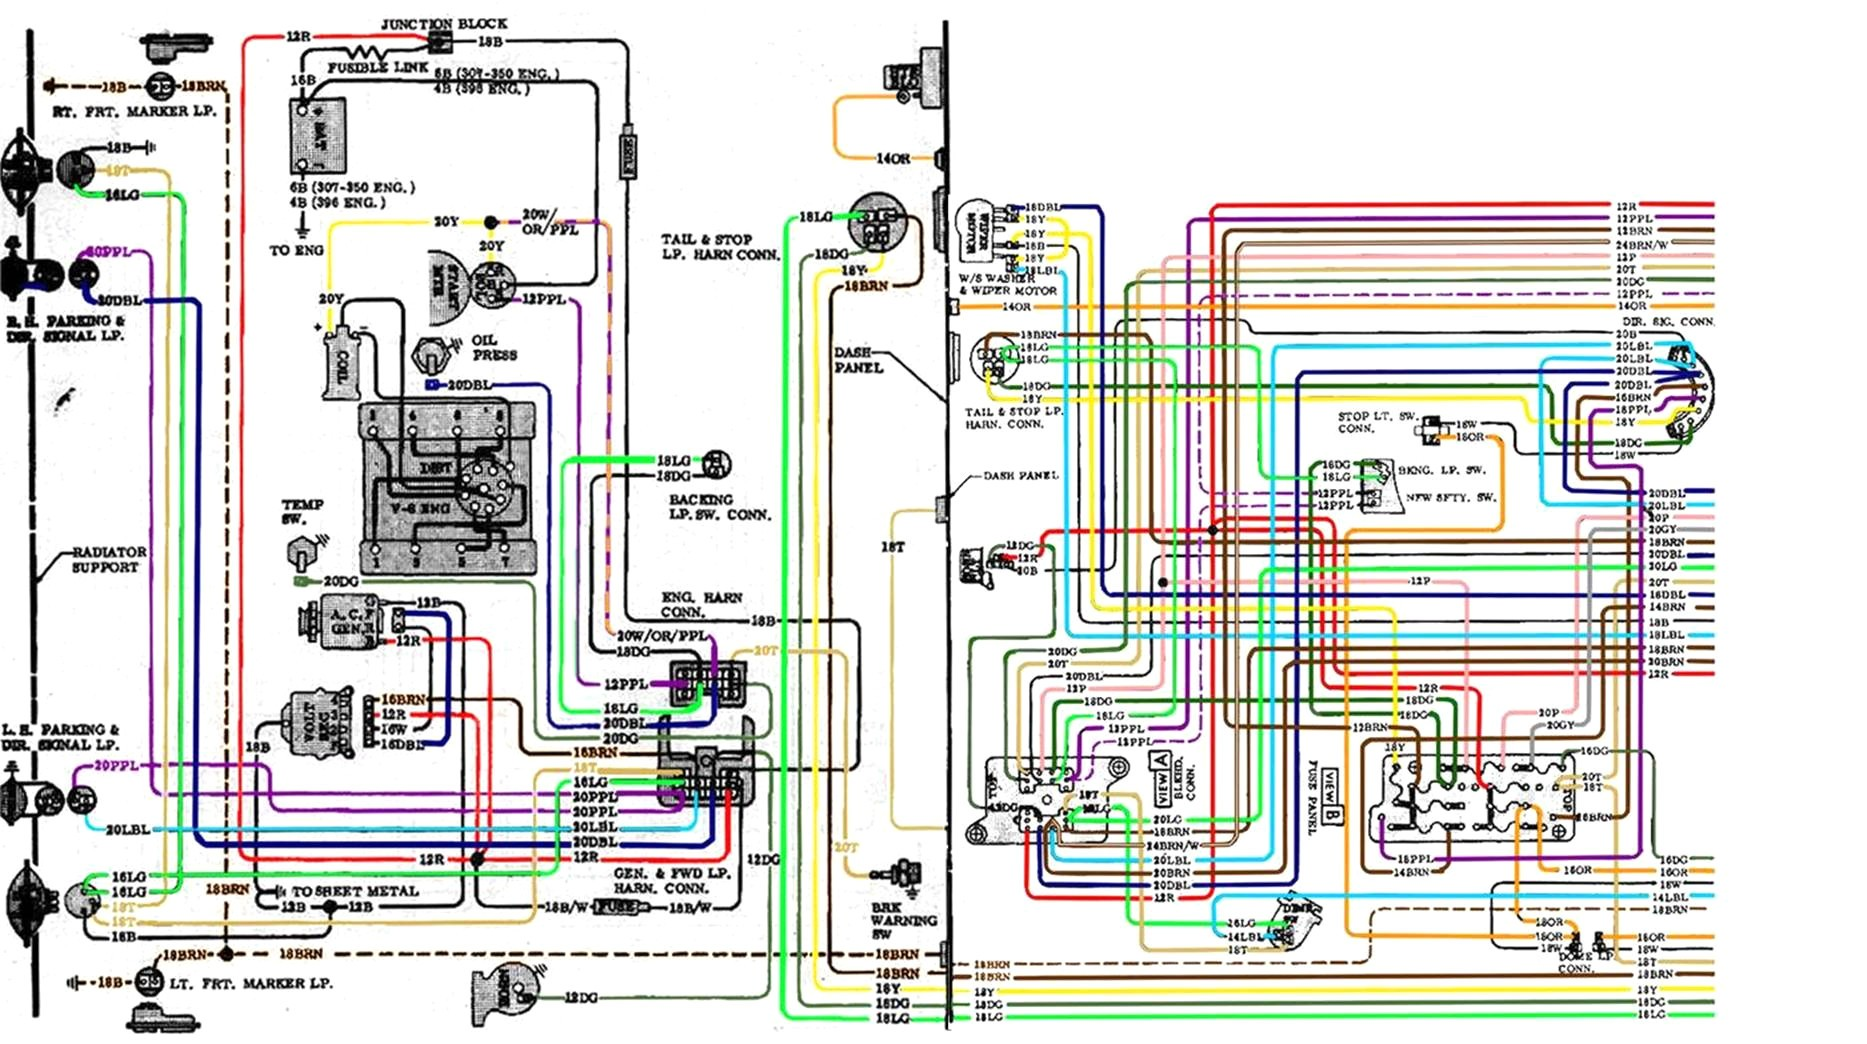 hight resolution of 67 gmc wiring harness database wiring diagram 67 gmc wiring harness